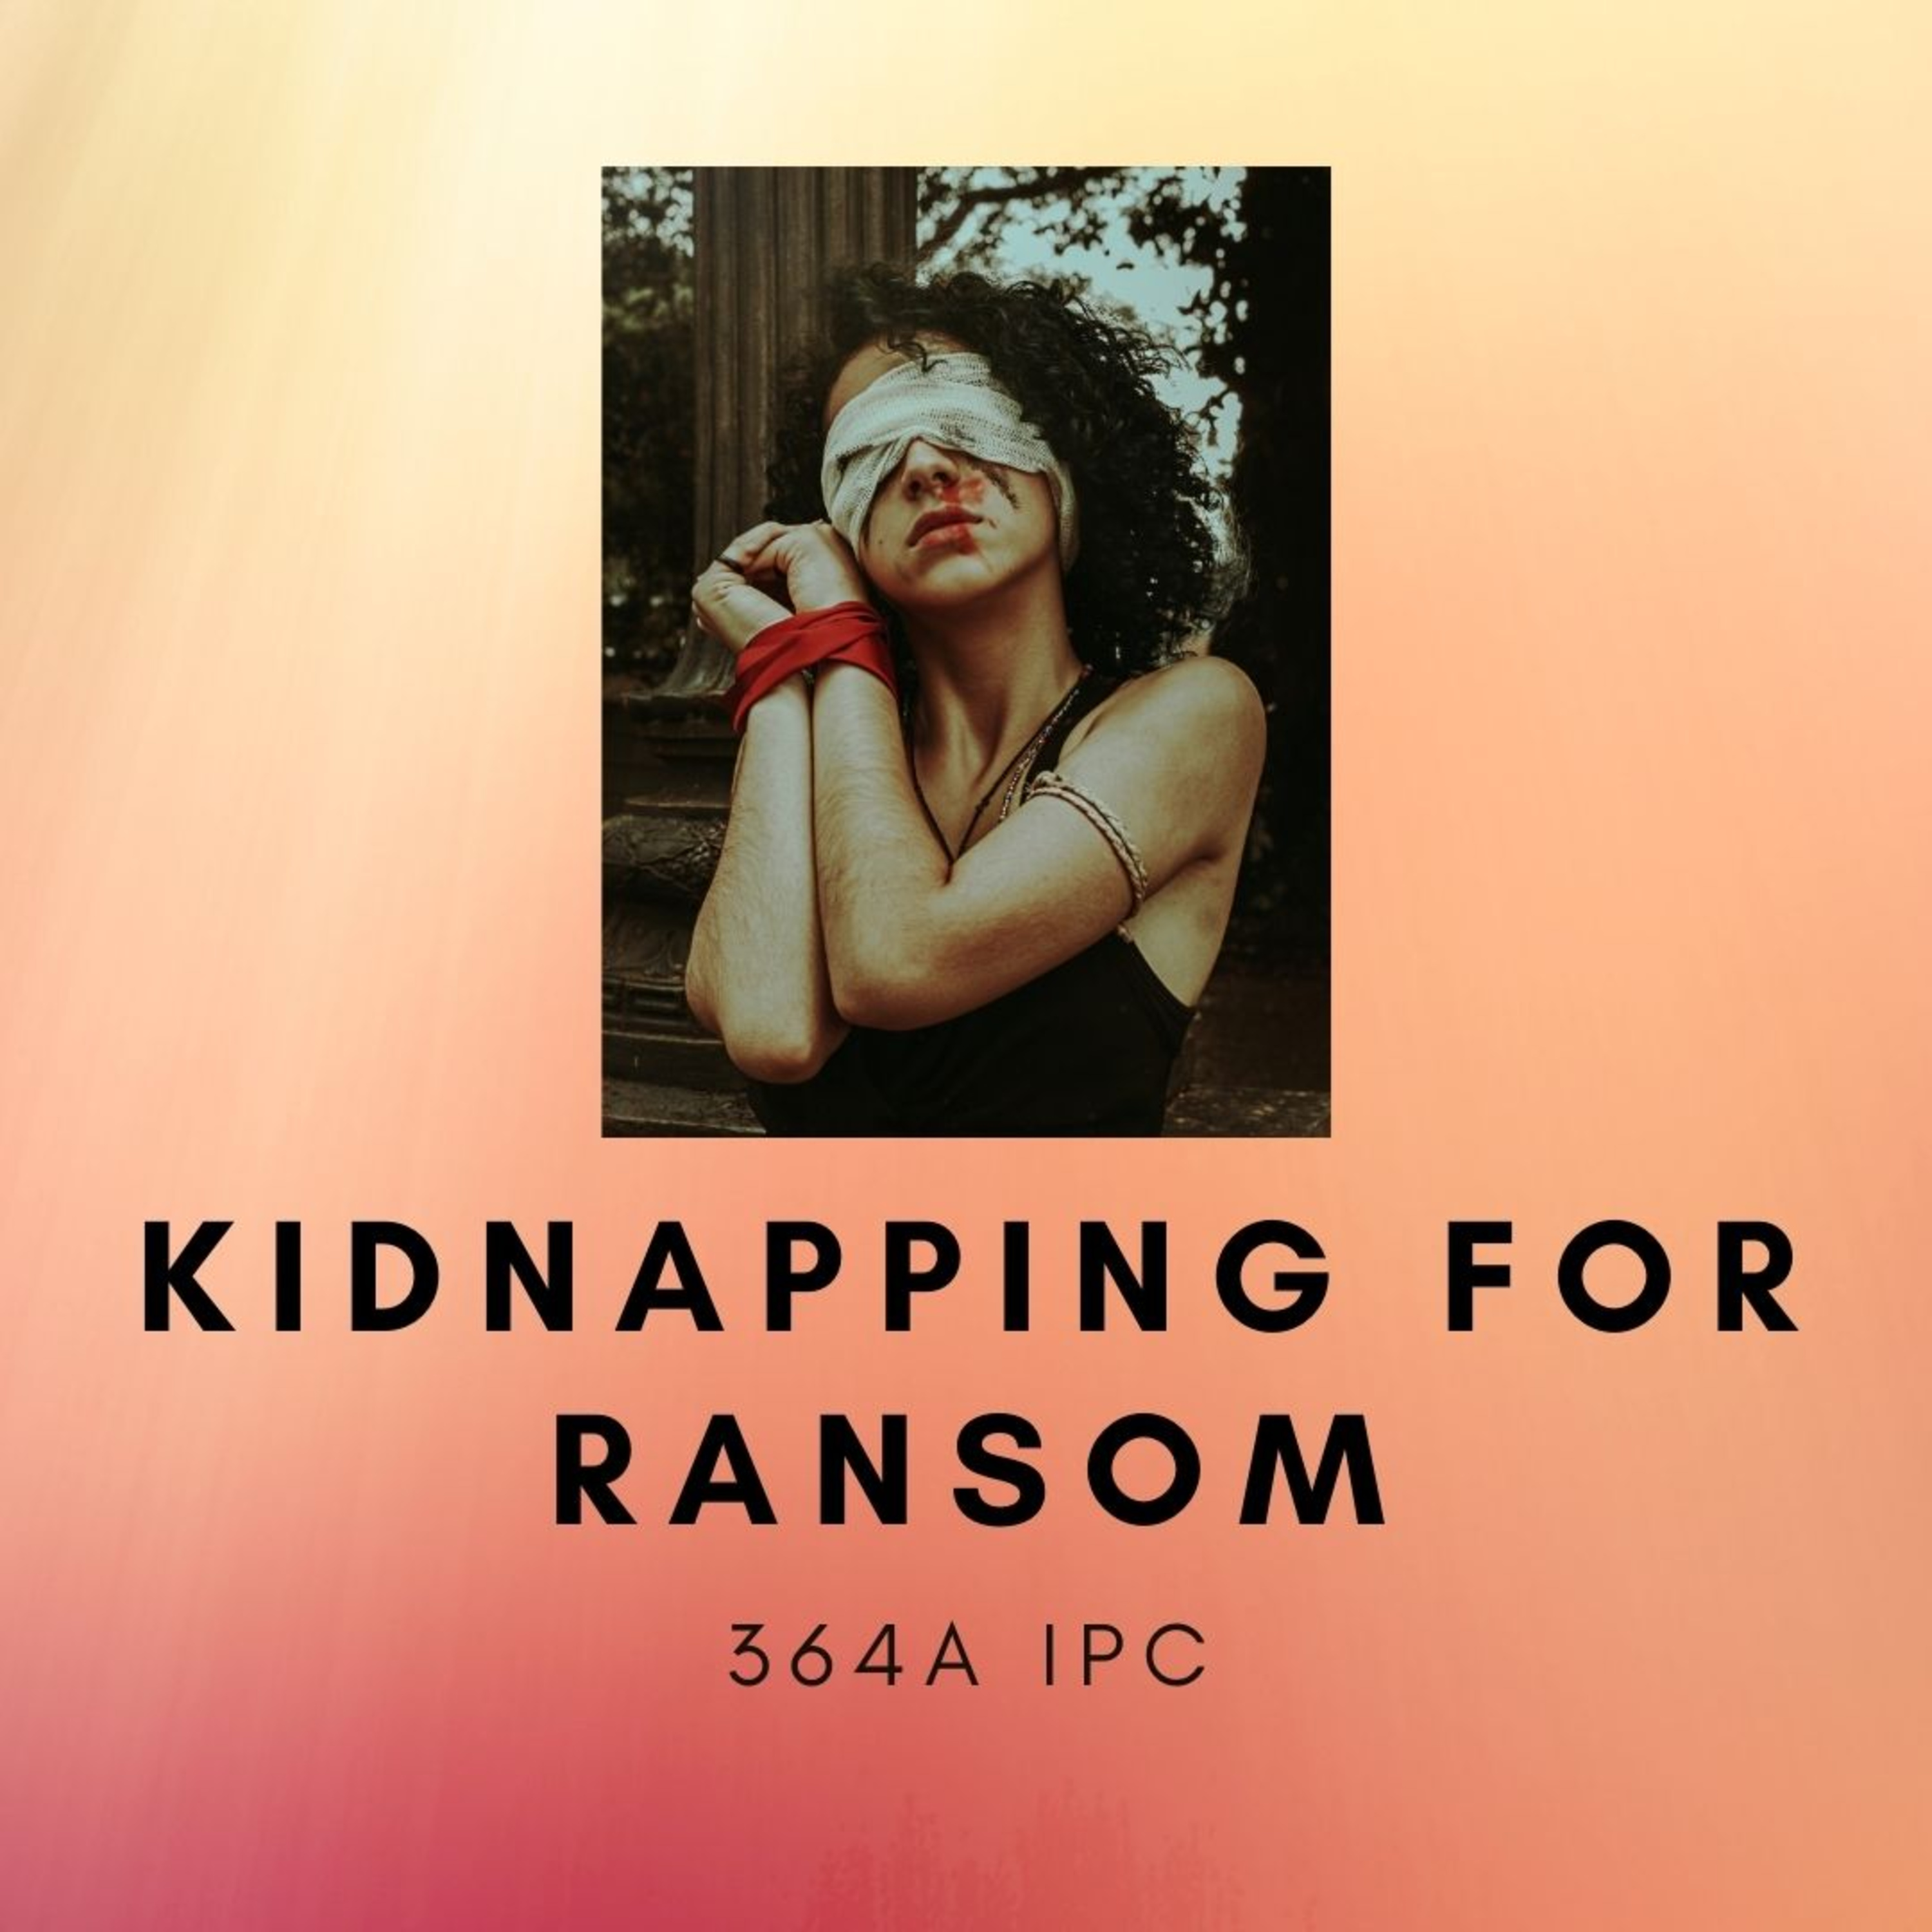 Kidnapping for Ransom: 364A IPC